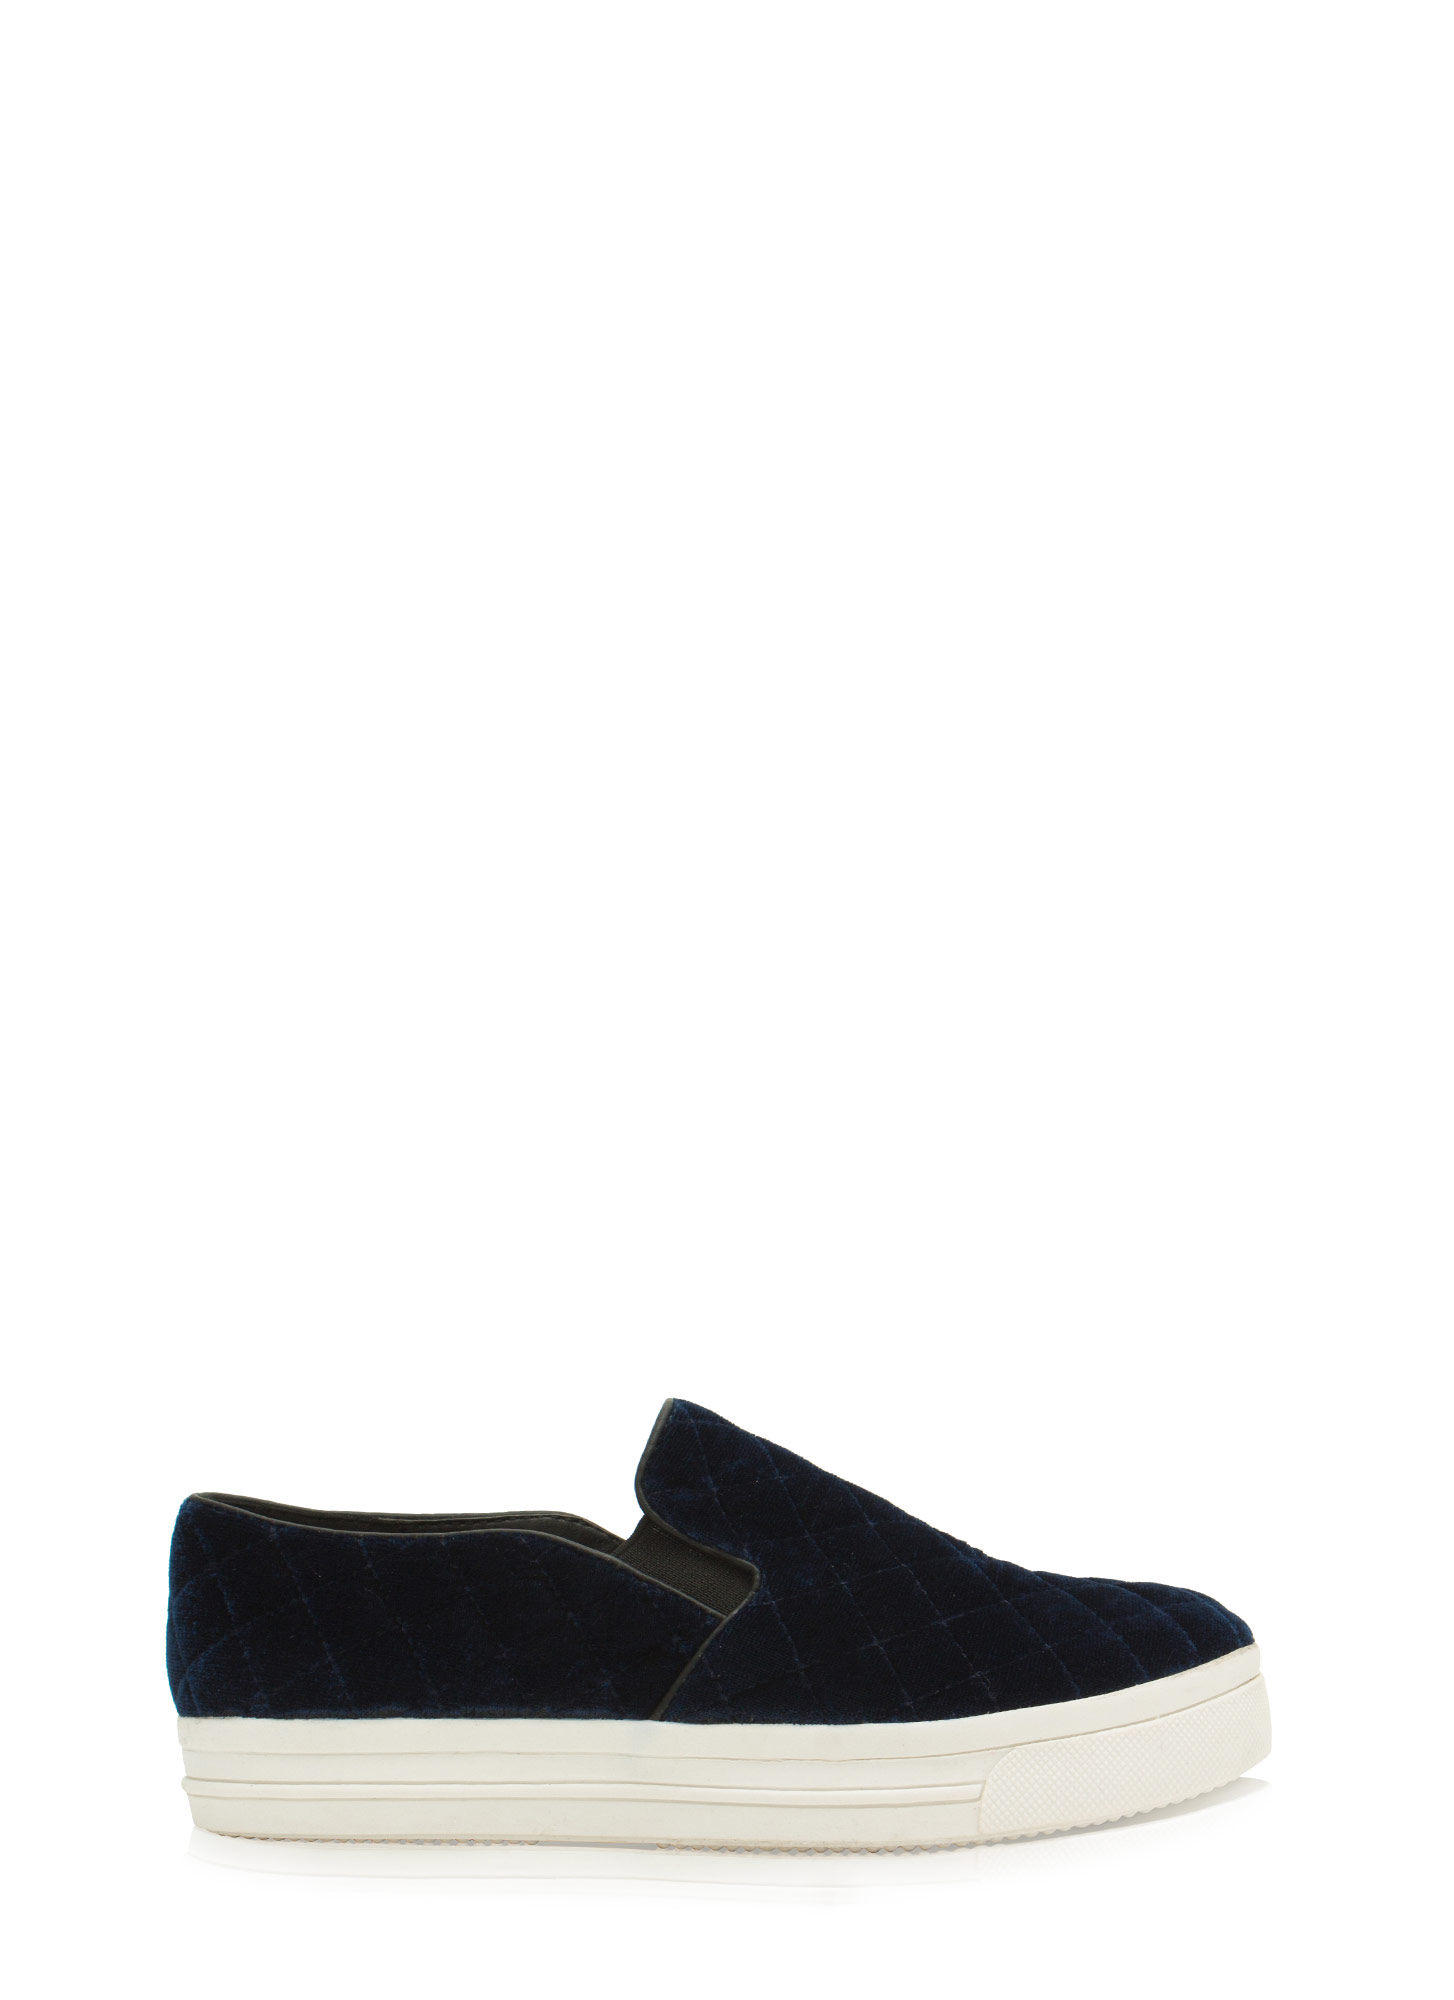 Quilt Trip Velvety Slip-On Sneakers NAVY